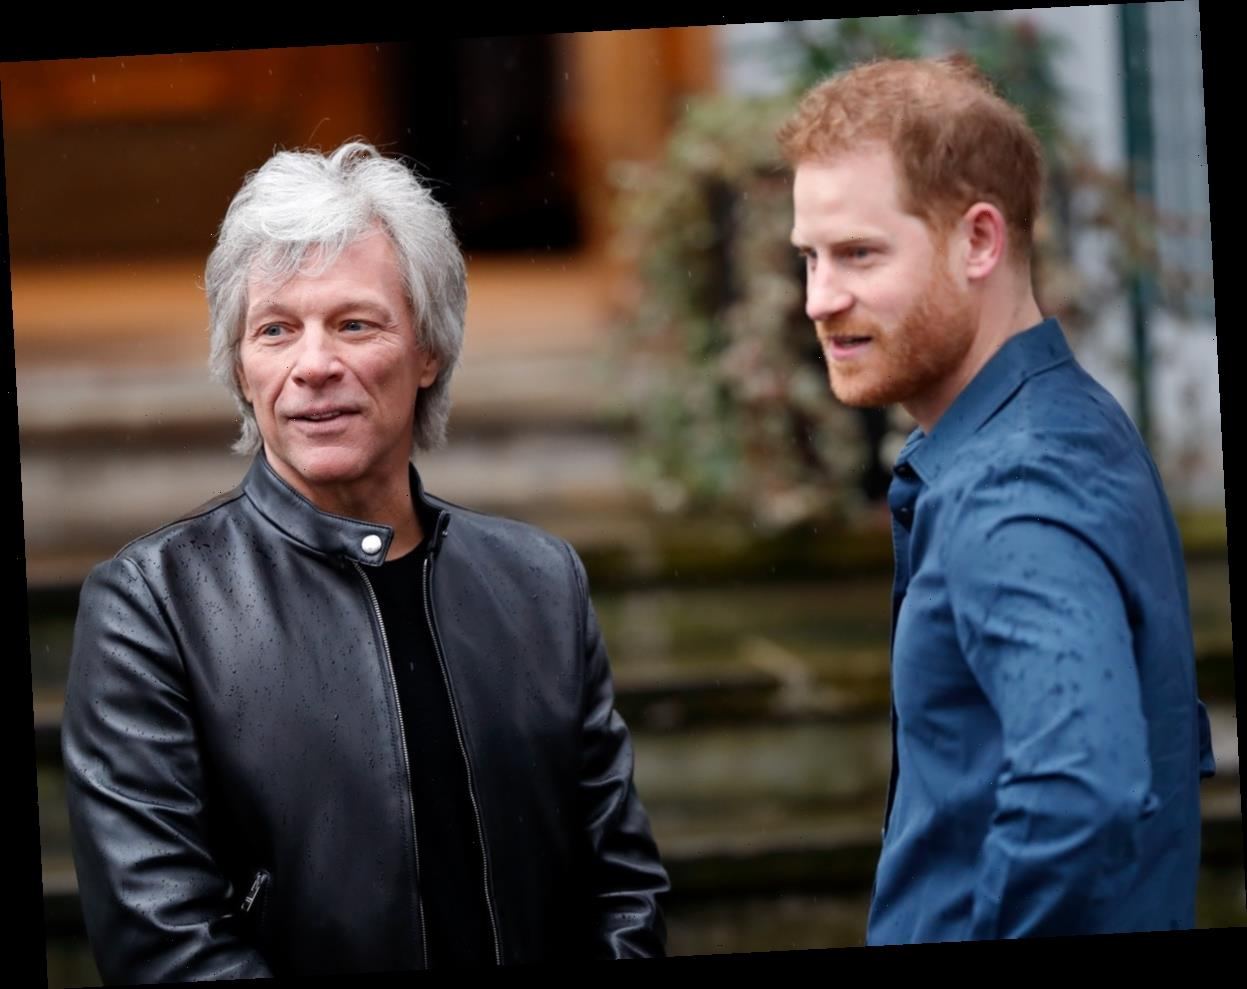 Prince Harry Reveals His Musical Chops In A New Invictus Games Collab With Bon Jovi